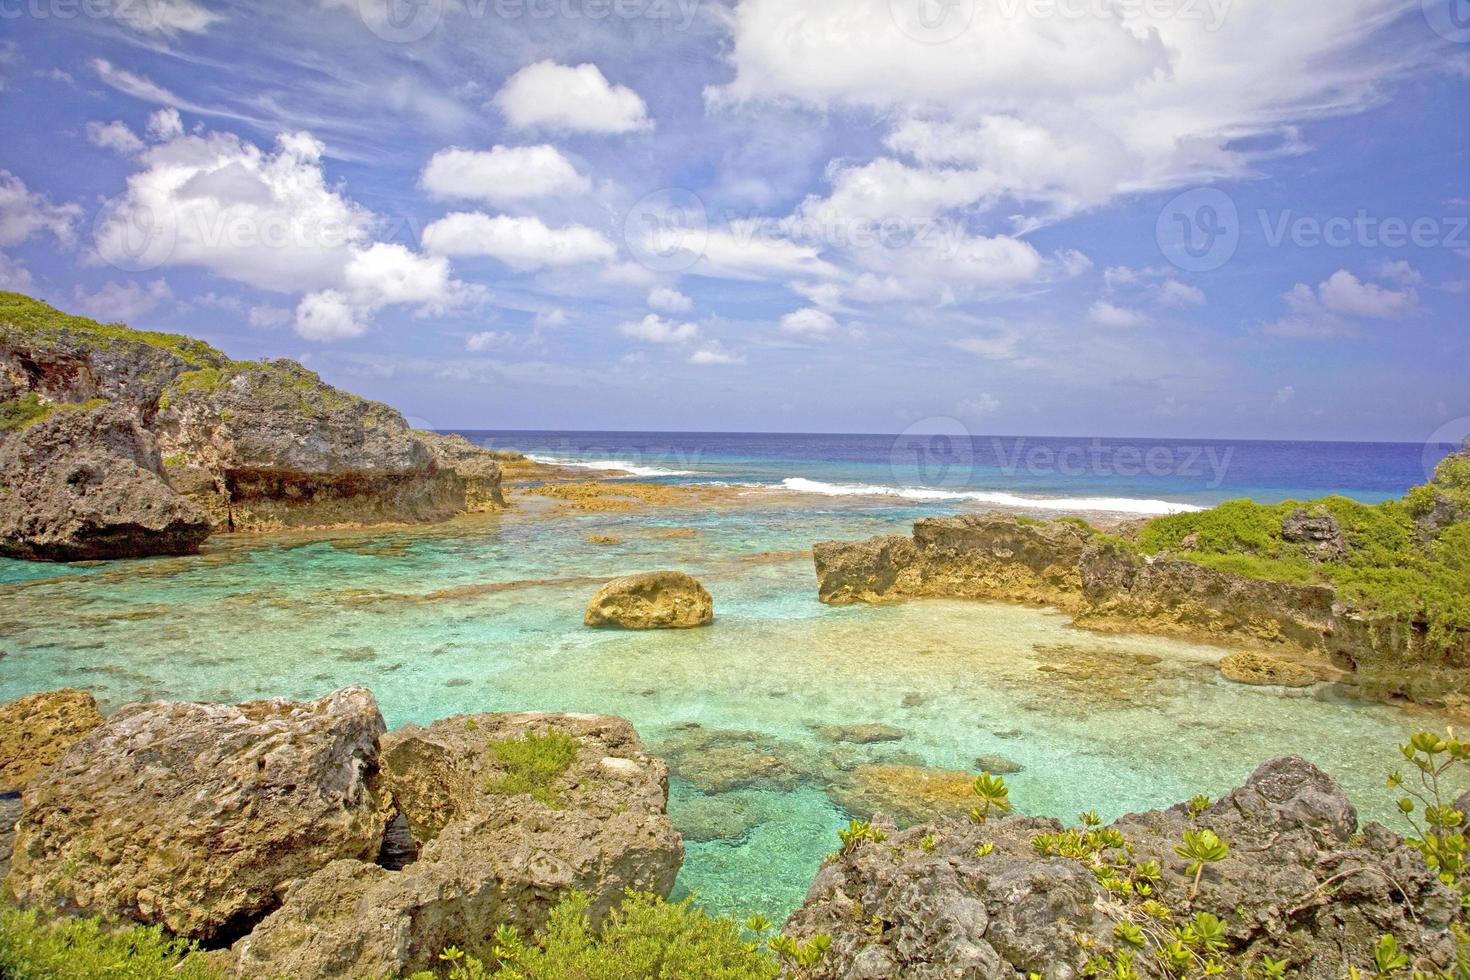 View over Limu Pools towards the ocean, Niue. photo